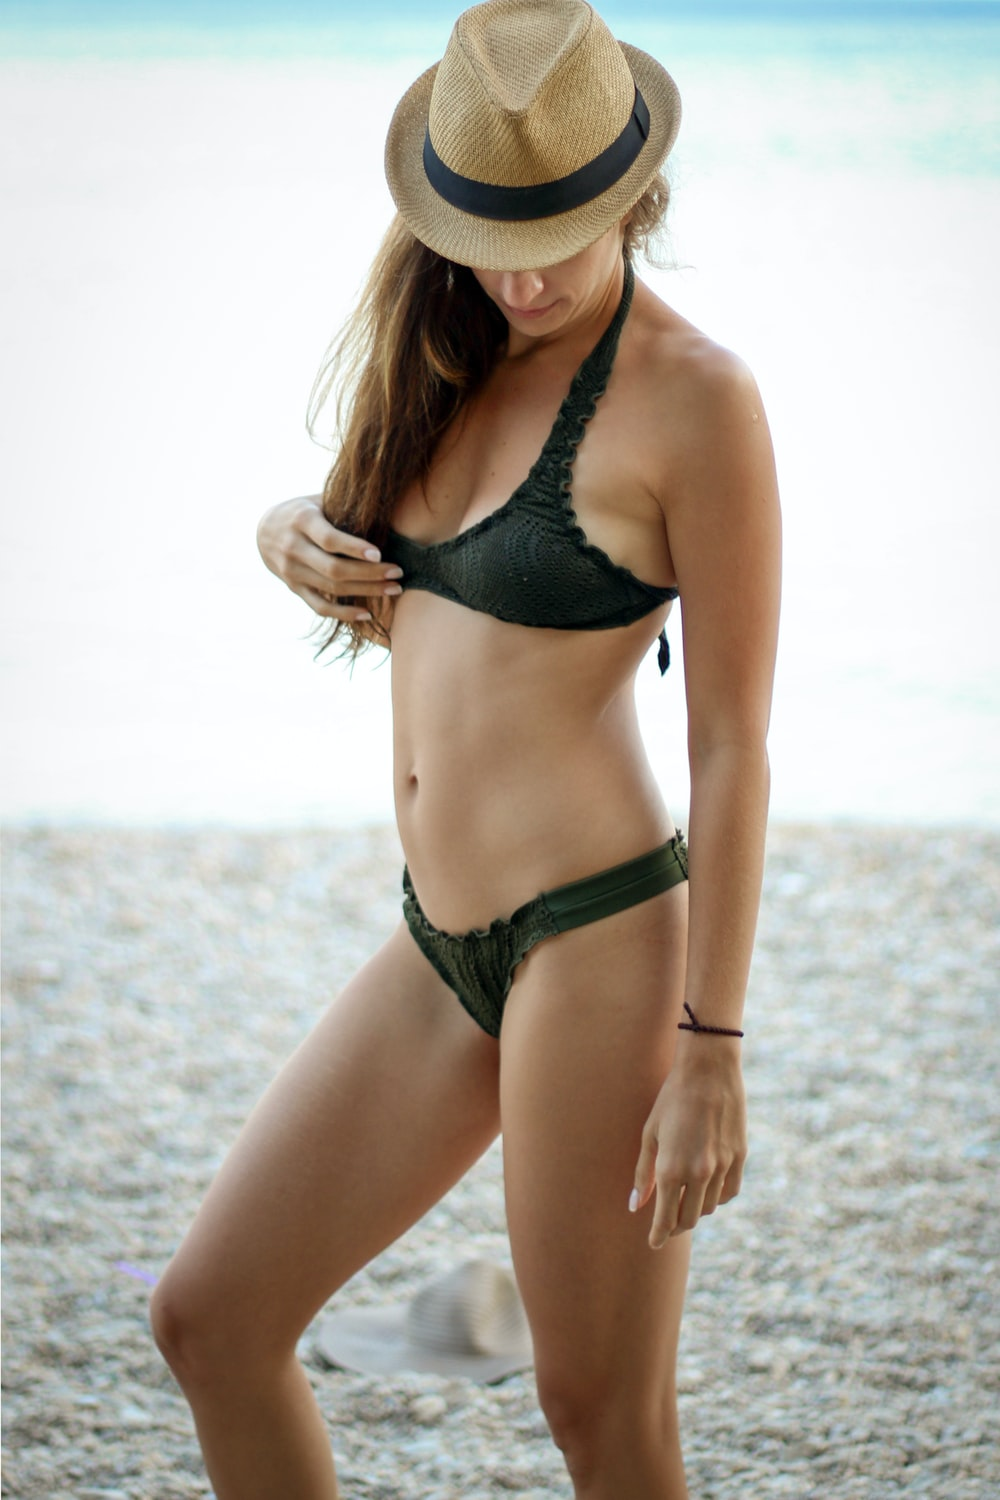 woman wearing black bikini